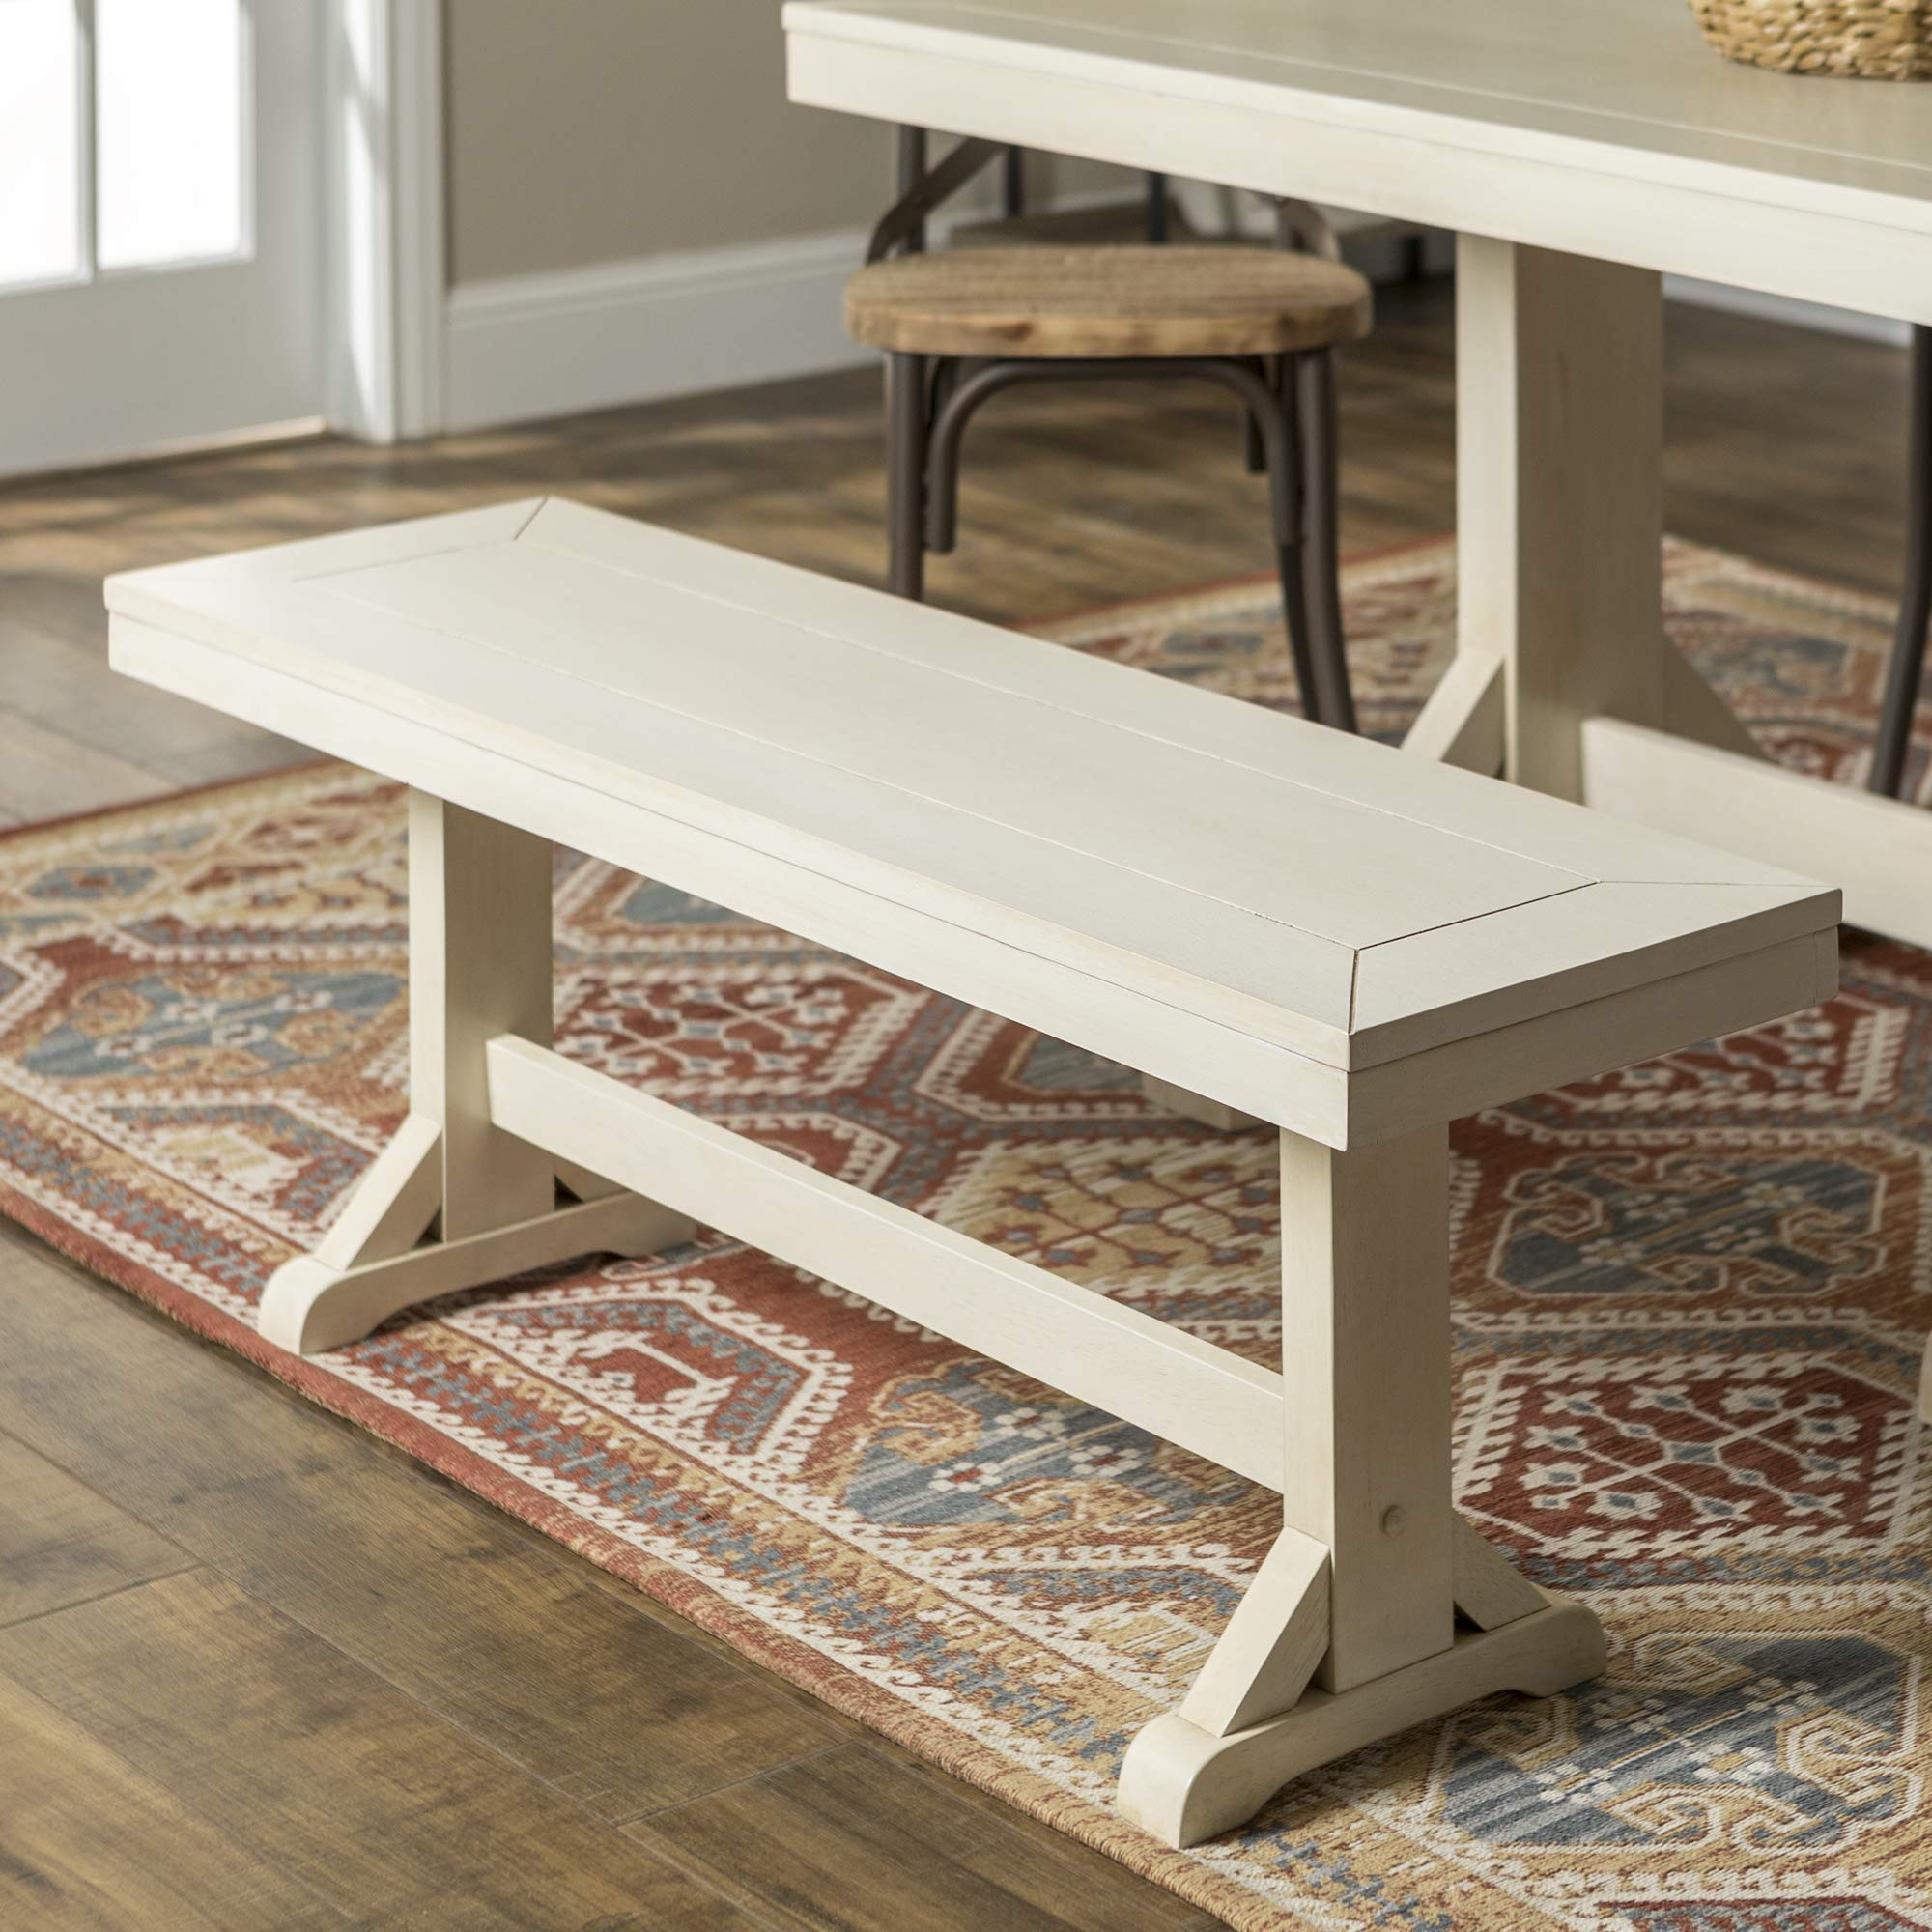 WE Furniture Rustic Farmhouse Wood 3 Person Dining Bench, 48 Inch, Antique White by WE Furniture